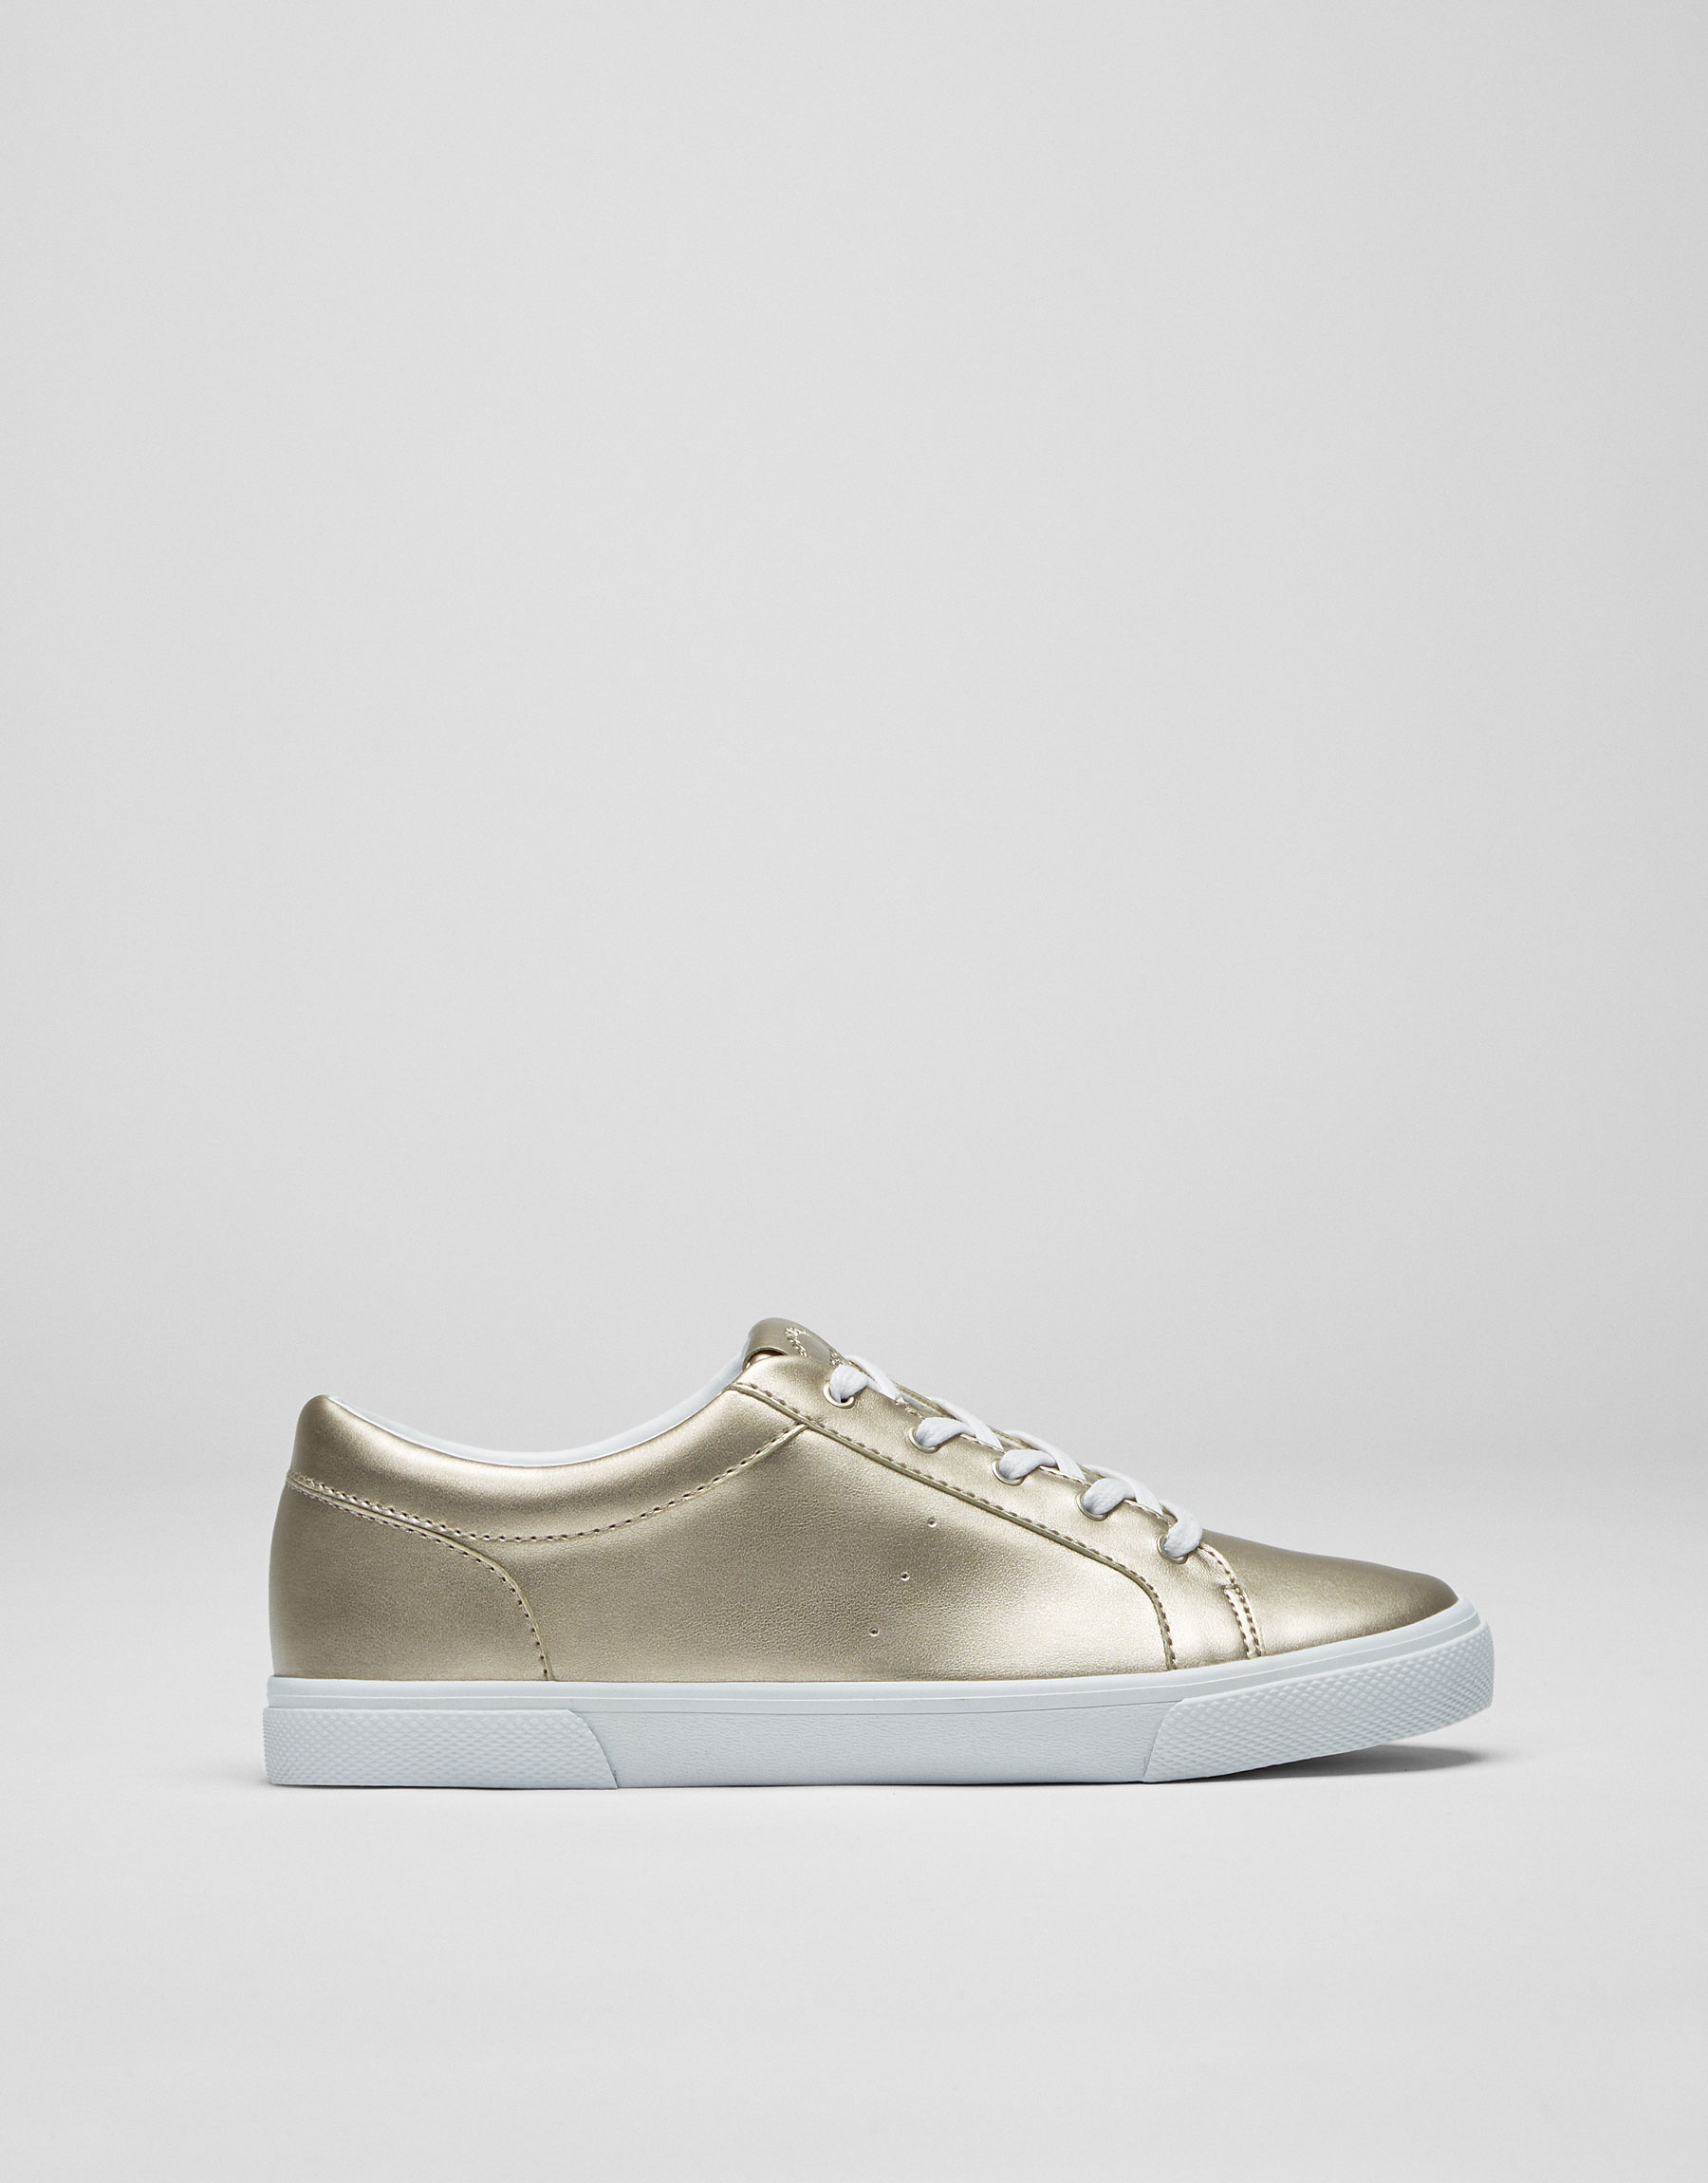 Basic-Sportschuhe in Gold mit Metallic-Finish